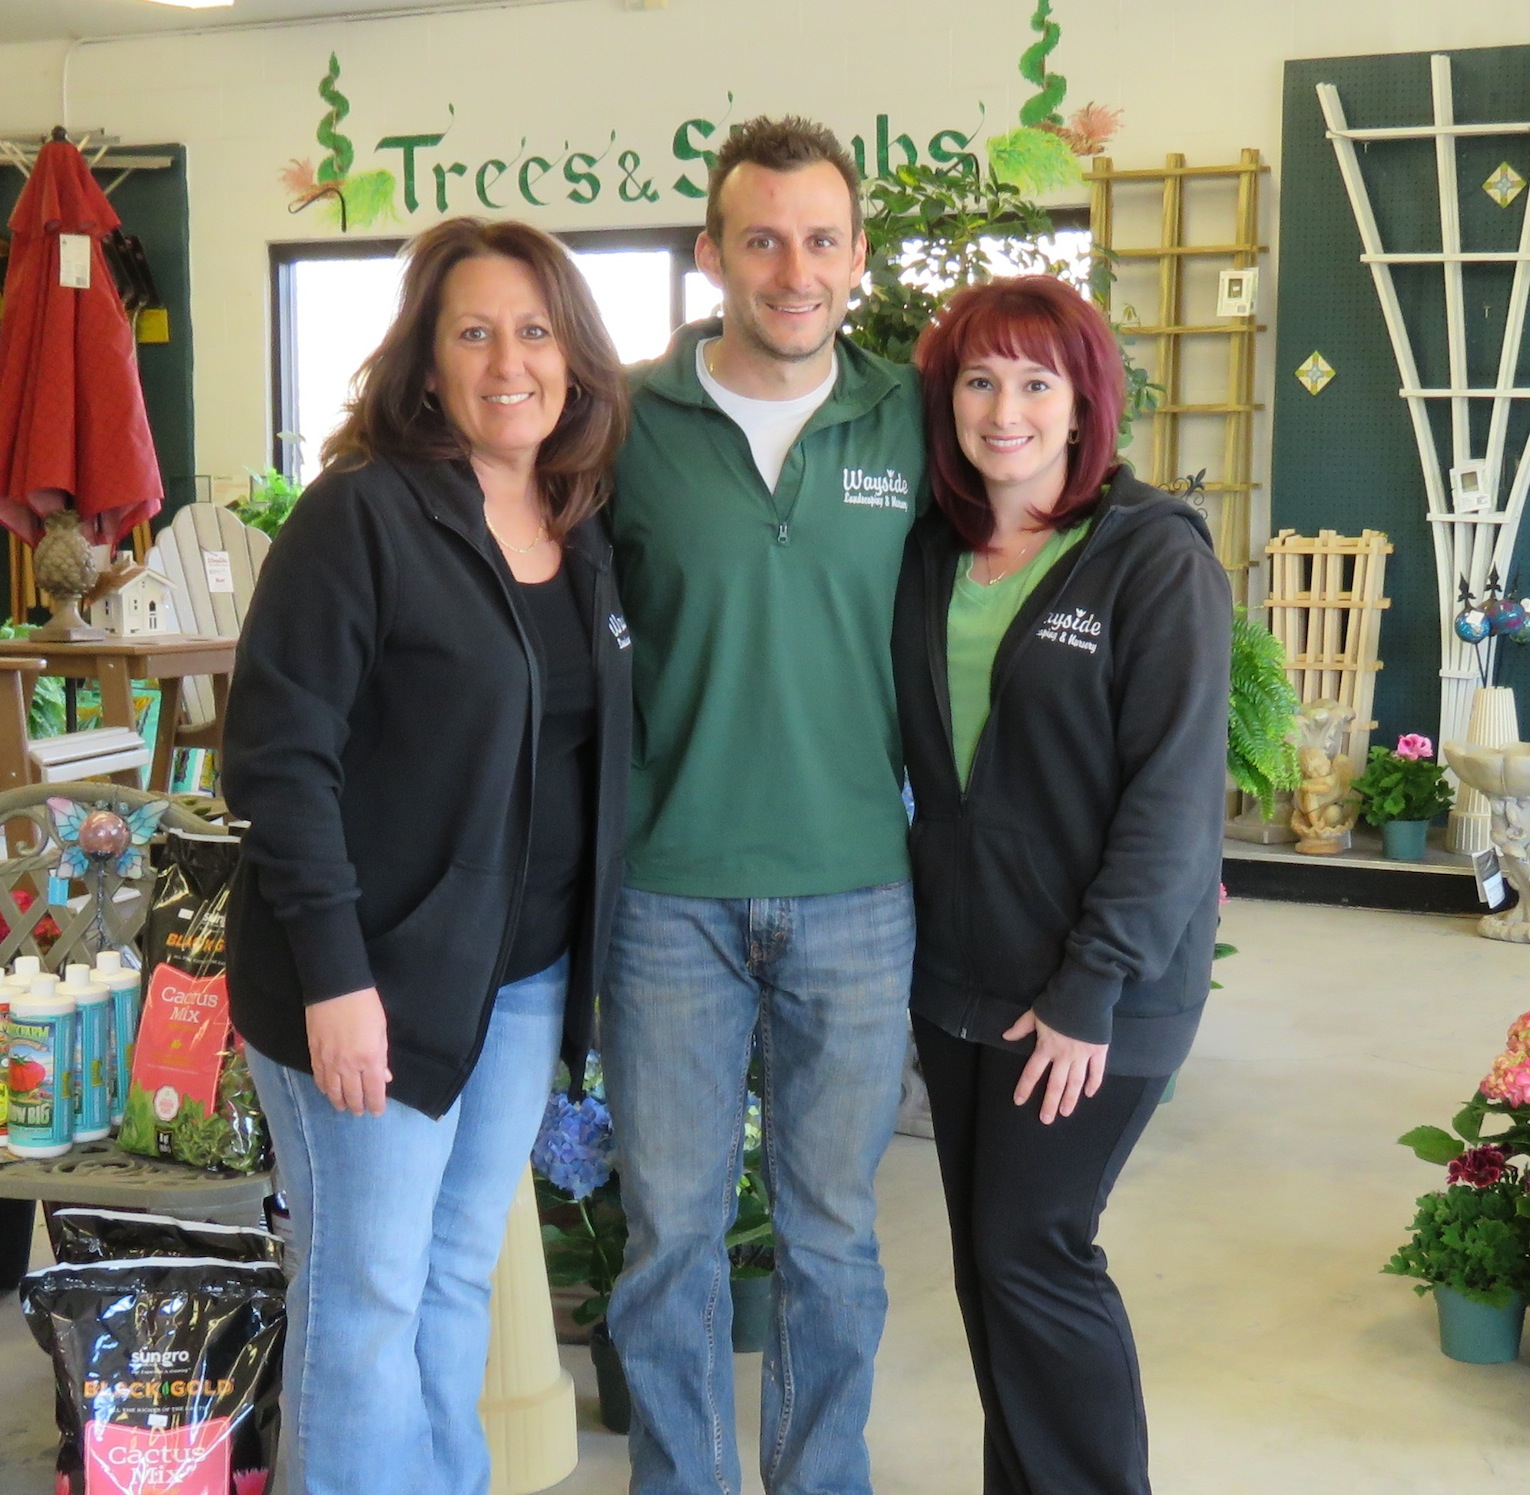 From left, Julie Rotella, Michael Rotella and Rachael Rotella all pose for a photo inside the Wayside Nursery. (All photos by David Yarger)